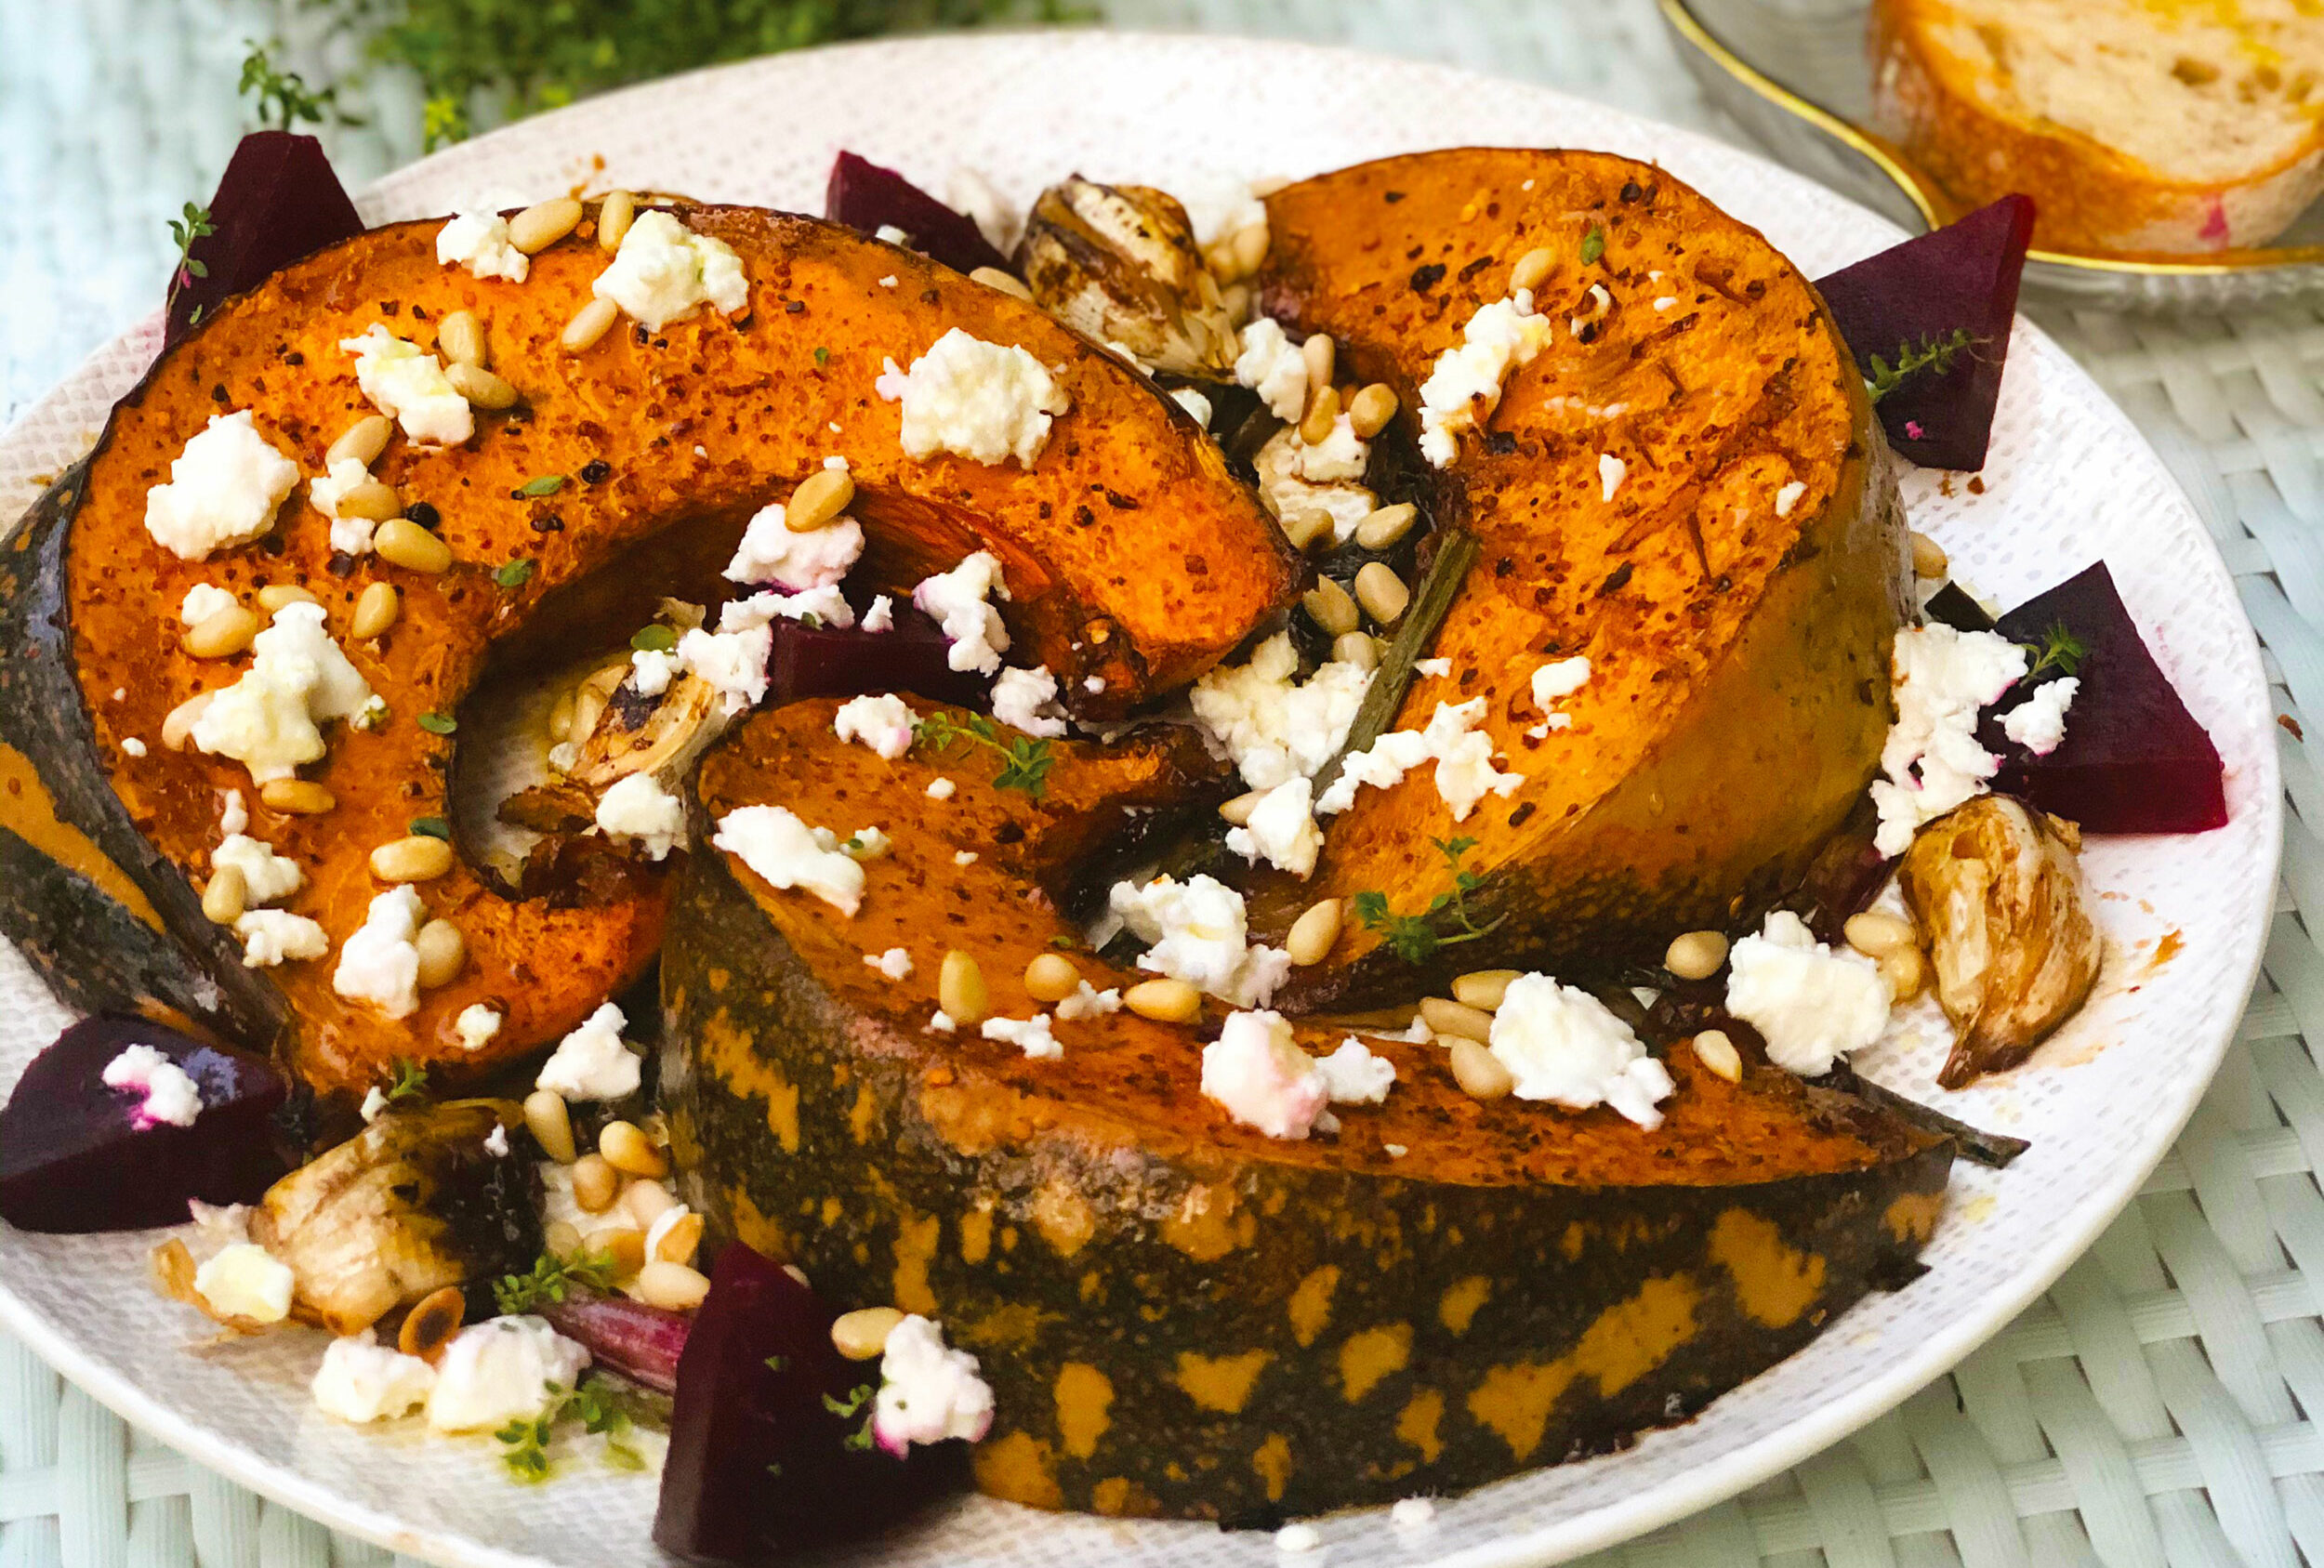 Roasted pumpkin with cheese